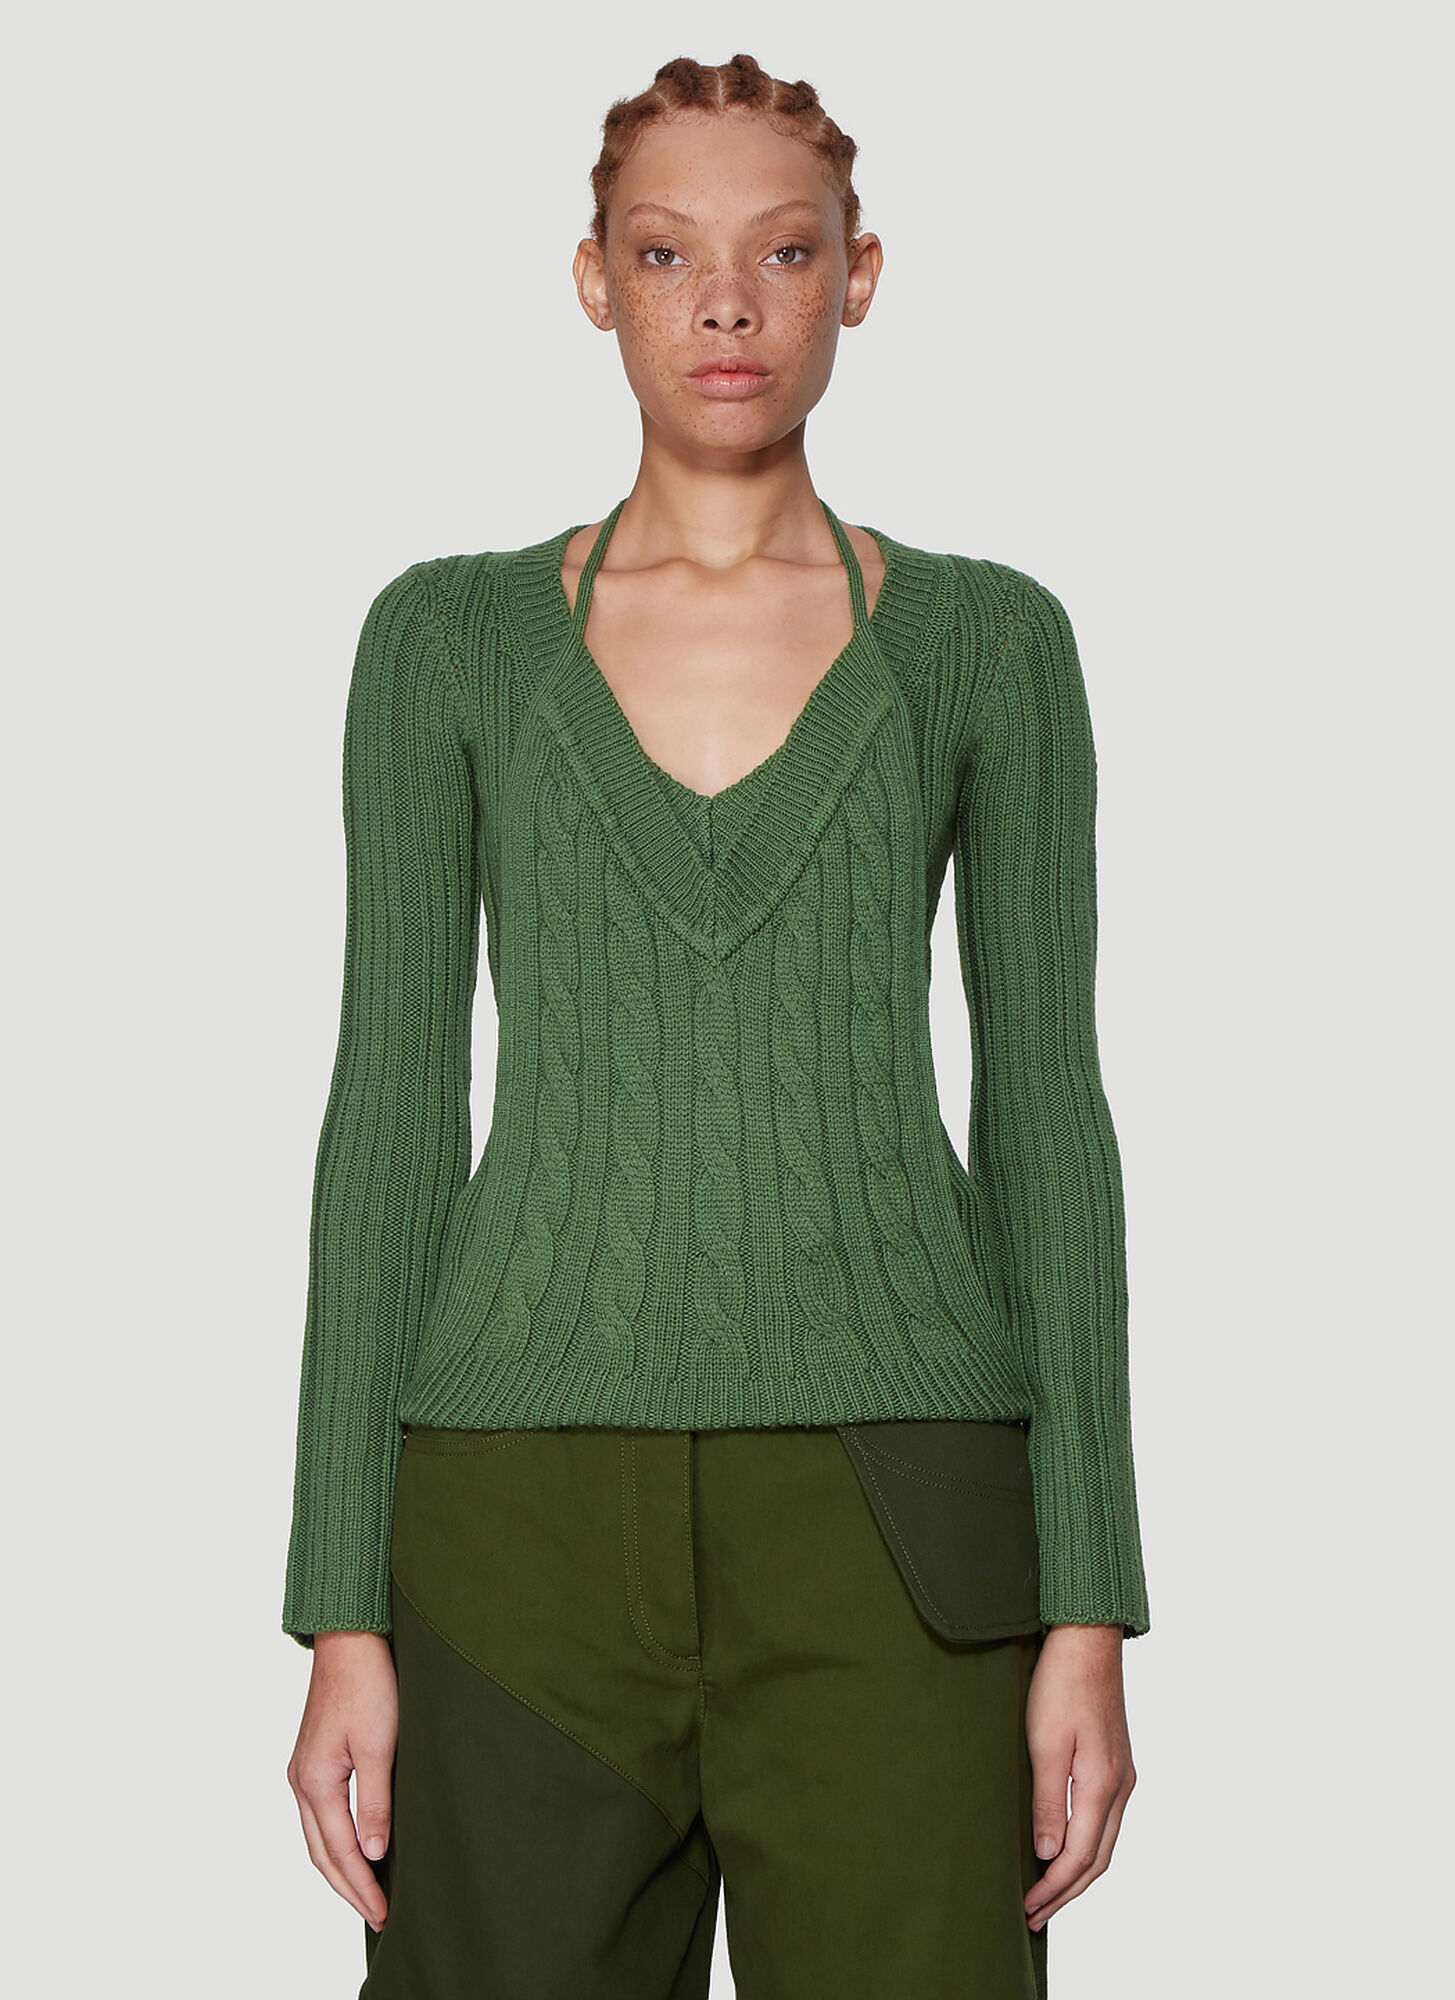 Jacquemus La Double Maille Knit Sweater in Green